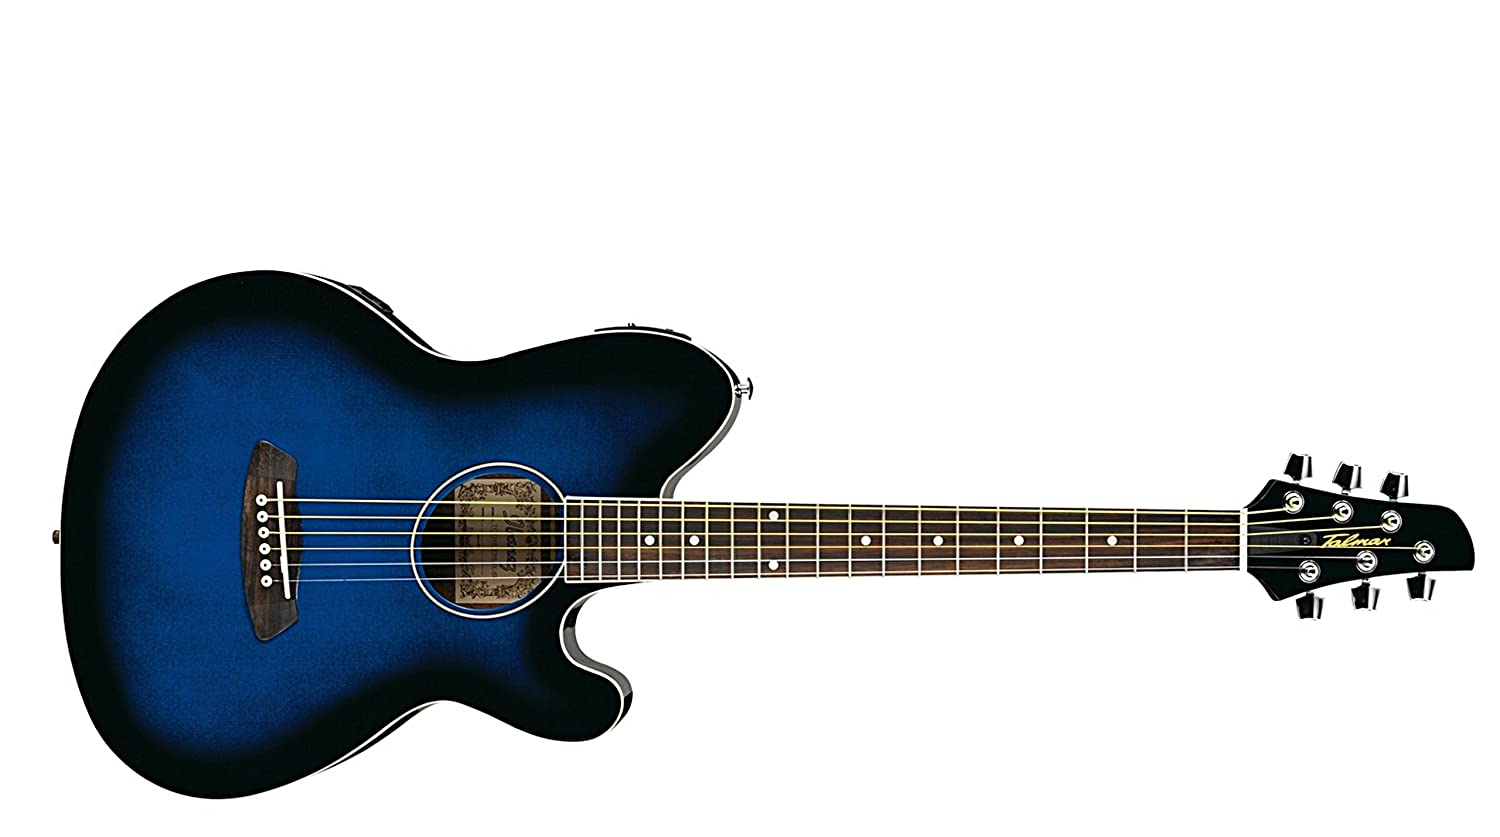 Amazon Ibanez TCY10ETBS Talman Acoustic Electric Guitar With Rosewood Fingerboard Transparent Blue Sunburst Musical Instruments